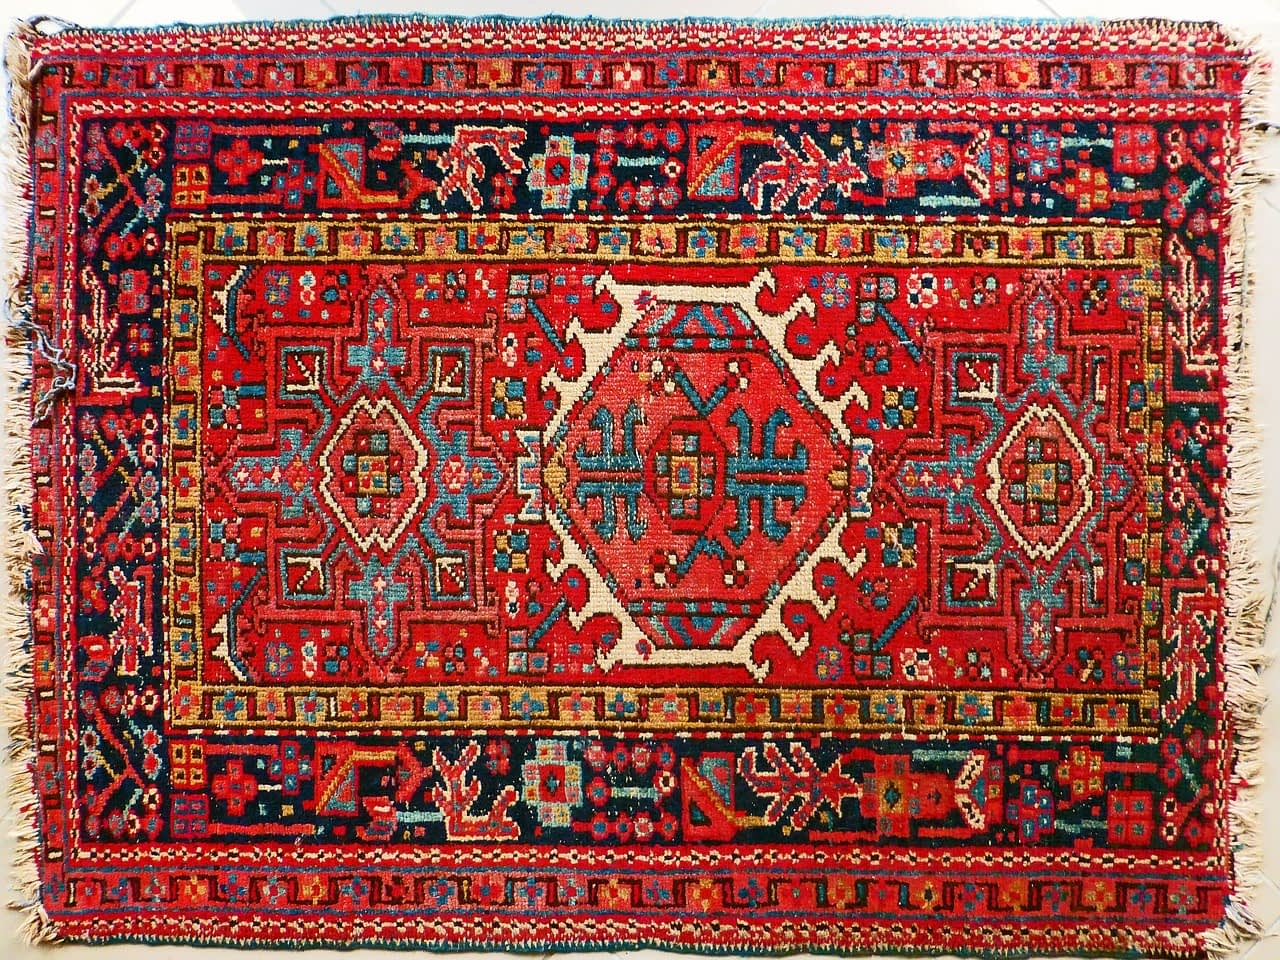 How To Check If A Rug Is An Authentic Persian